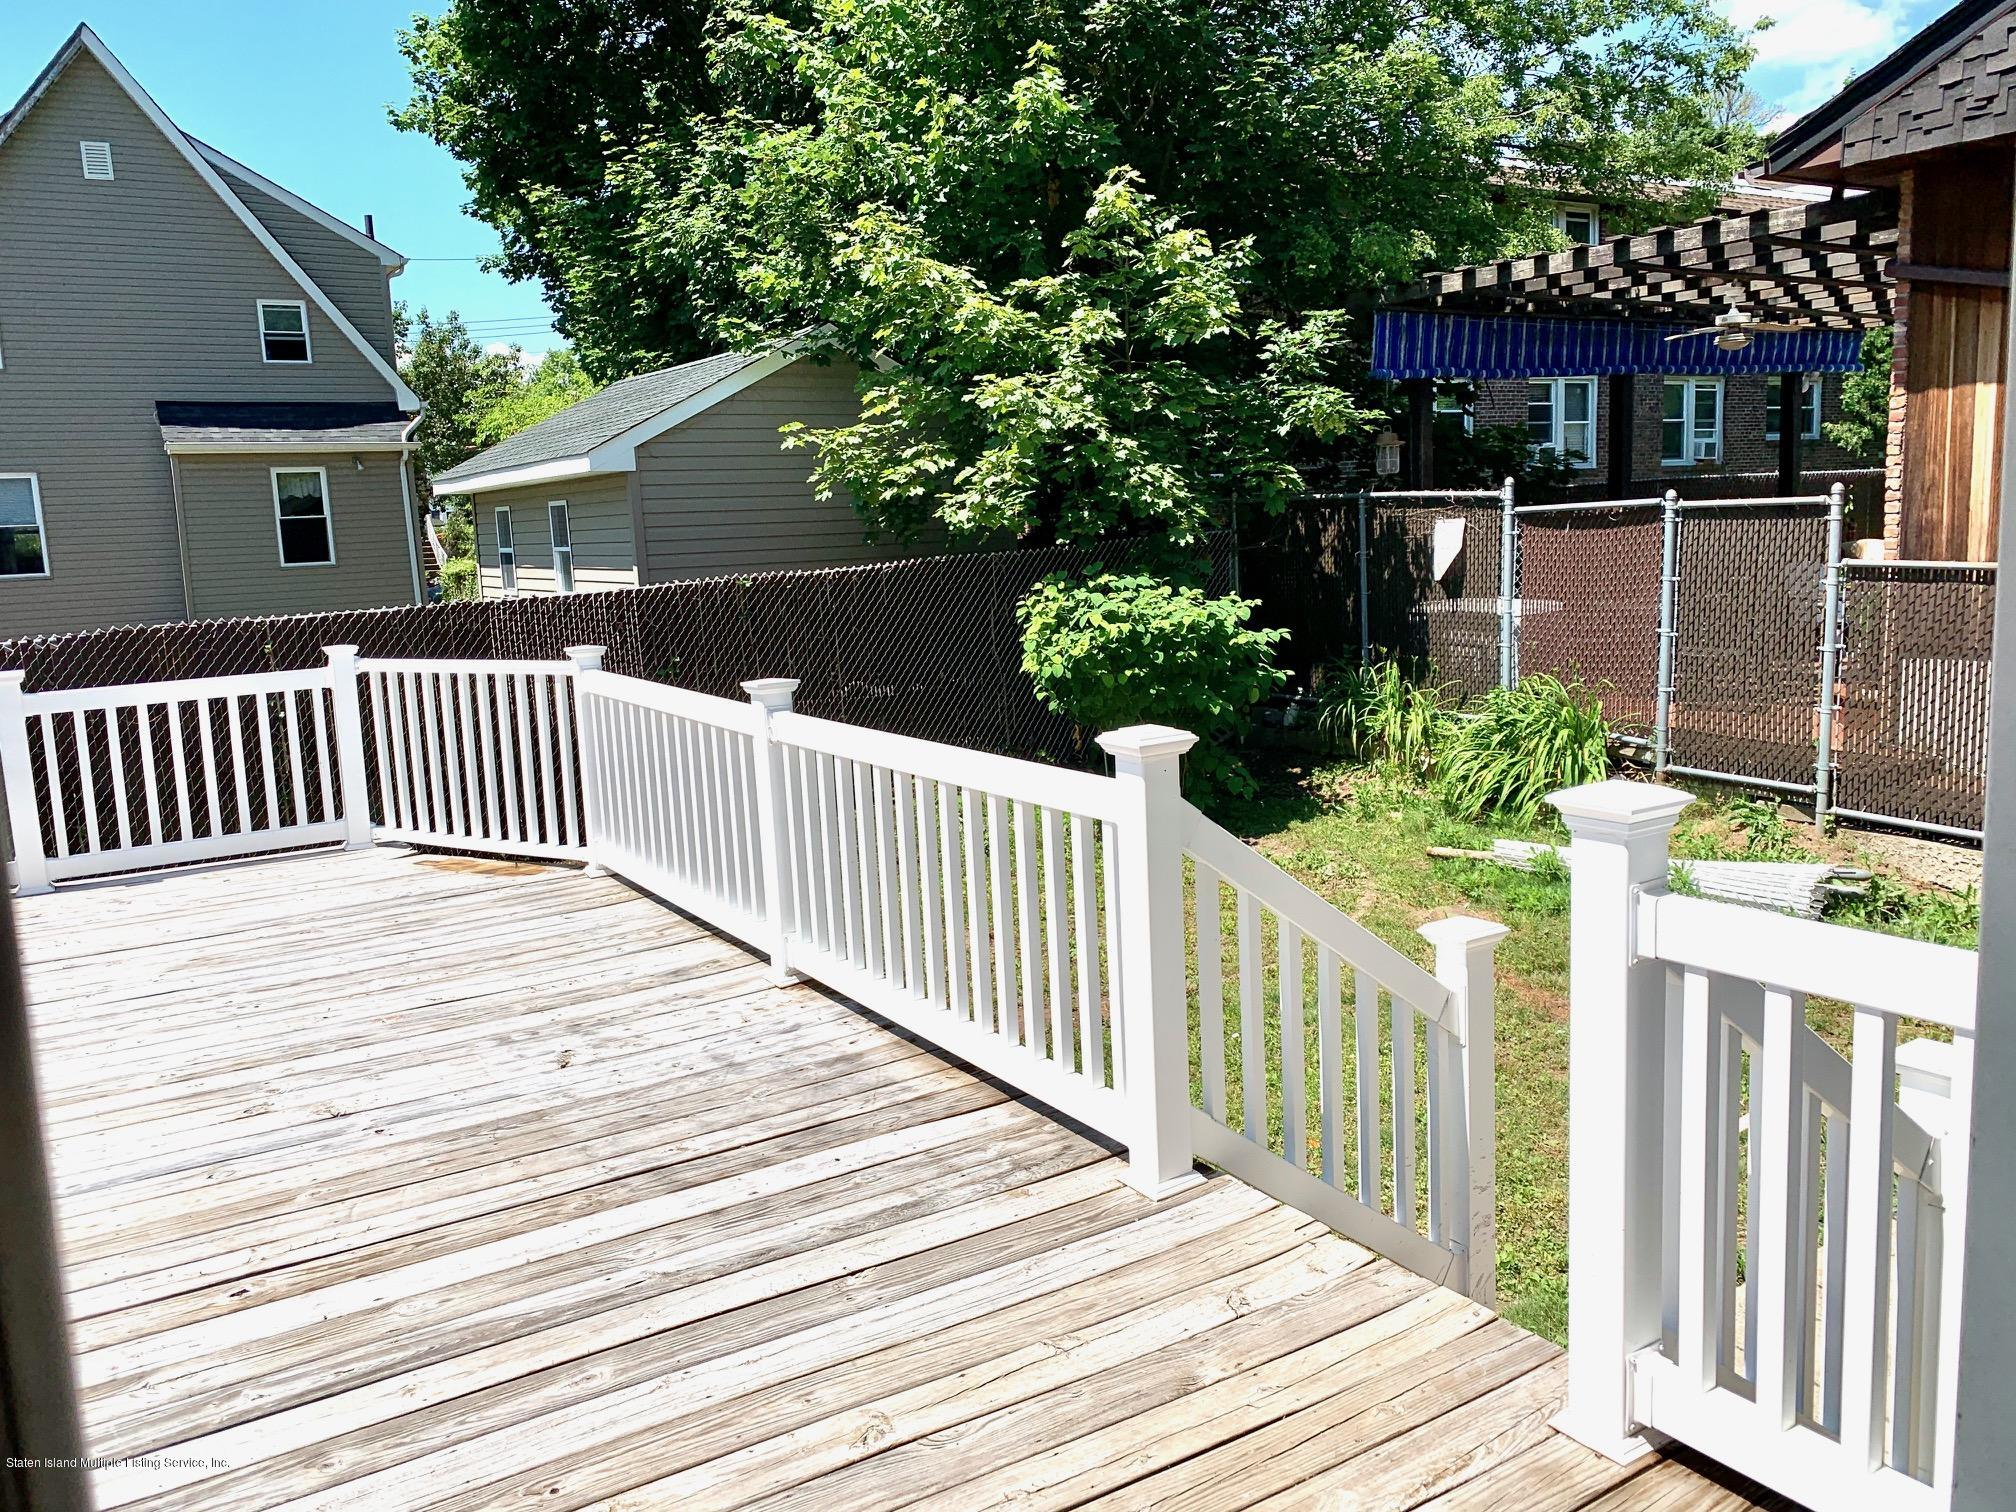 Two Family - Detached 20 Locust Avenue  Staten Island, NY 10306, MLS-1138037-11